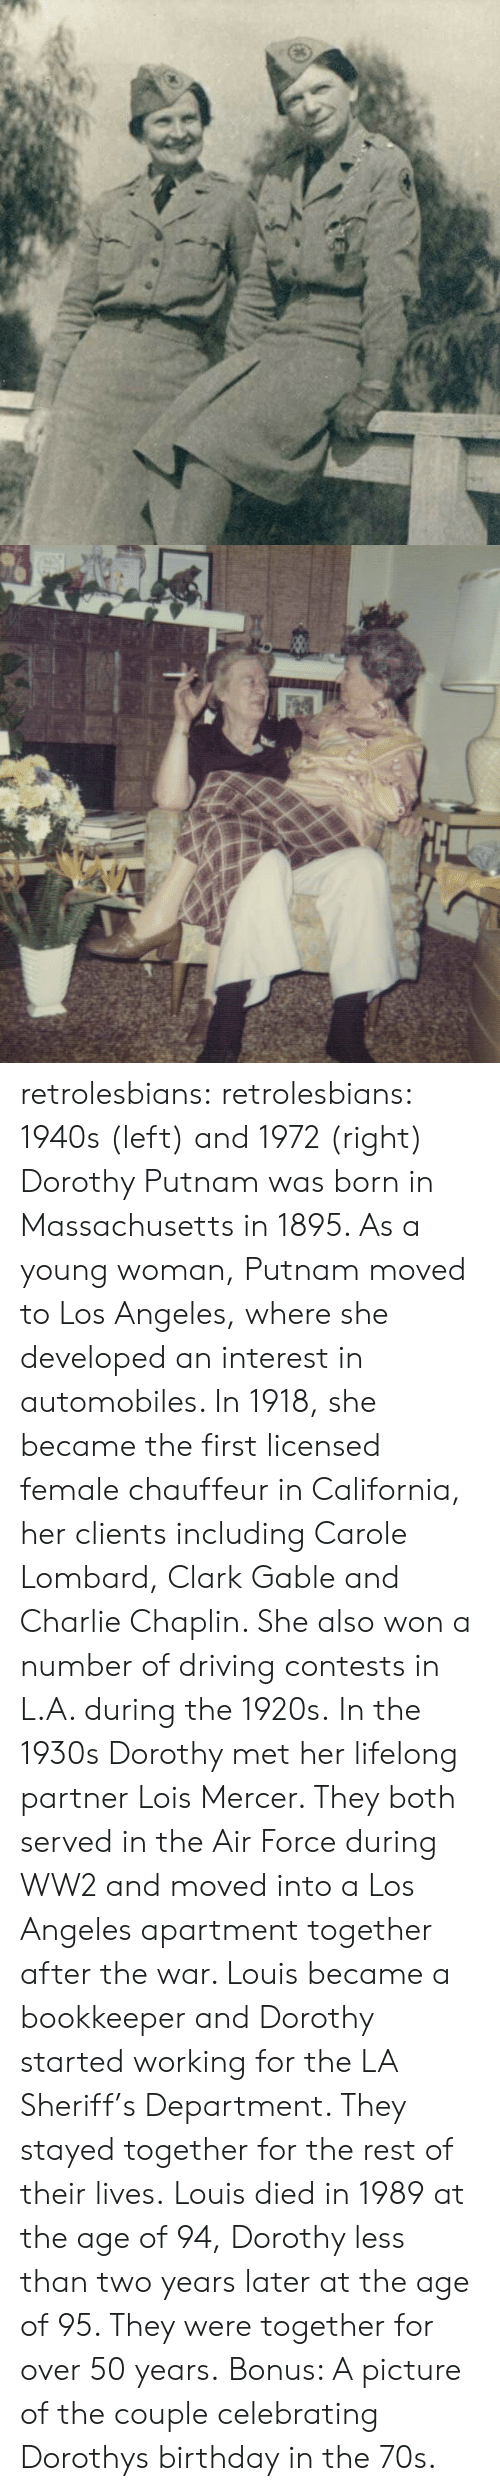 Carole: retrolesbians:  retrolesbians:  1940s (left) and 1972 (right)   Dorothy Putnam was born in Massachusetts in 1895. As a young woman, Putnam moved to Los Angeles, where she developed an interest in automobiles. In 1918, she became the first licensed female chauffeur in California, her clients including Carole Lombard, Clark Gable and Charlie Chaplin. She also won a number of driving contests in L.A. during the 1920s.  In the 1930s Dorothy met her lifelong partner Lois Mercer. They both served in the Air Force during WW2 and moved into a Los Angeles apartment together after the war. Louis became a bookkeeper and Dorothy started working for the LA Sheriff's Department. They stayed together for the rest of their lives. Louis died in 1989 at the age of 94, Dorothy less than two years later at the age of 95. They were together for over 50 years.  Bonus: A picture of the couple celebrating Dorothys birthday in the 70s.